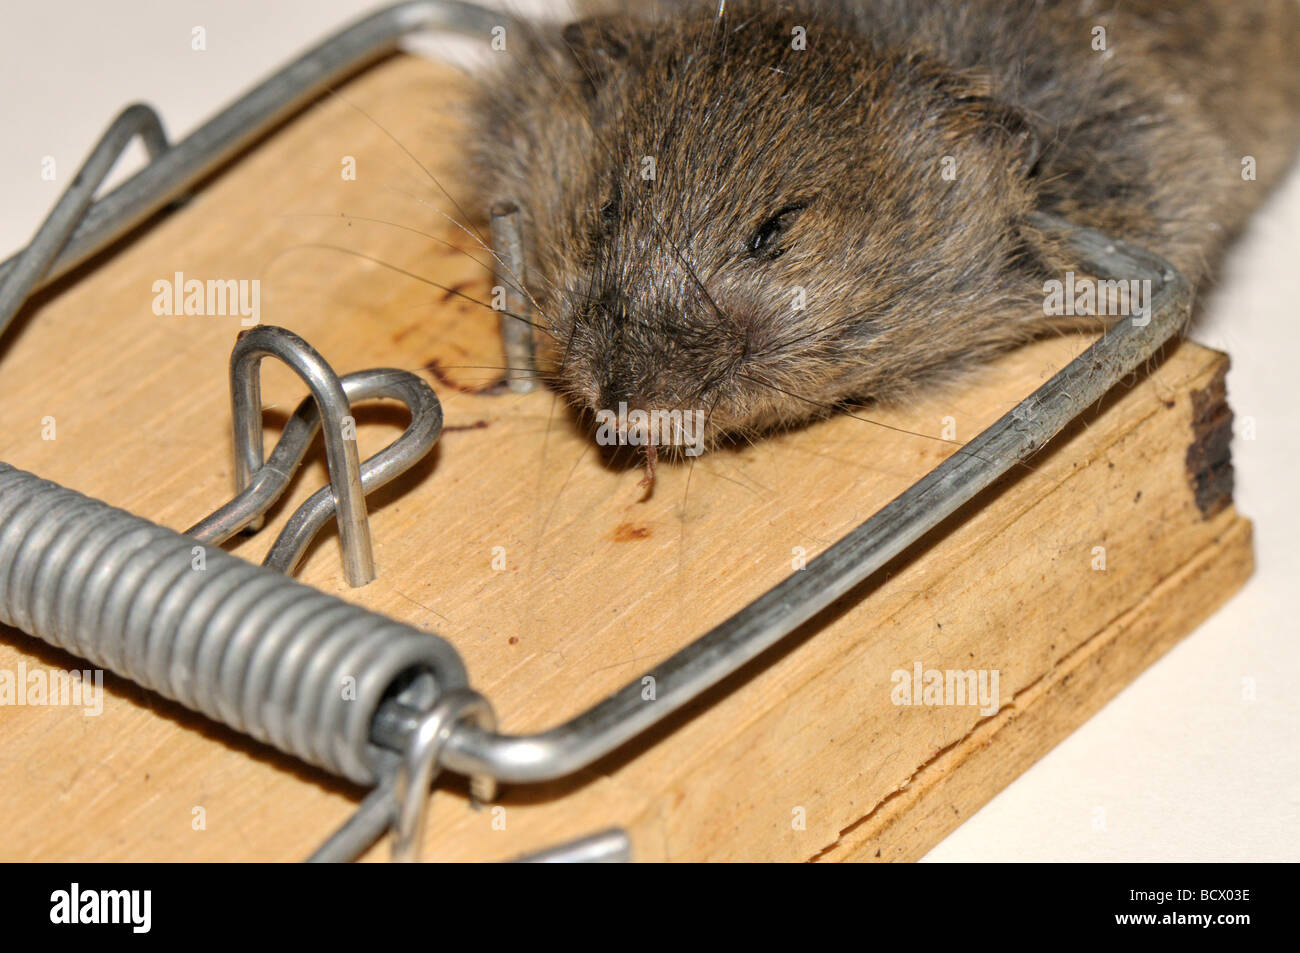 House Mouse Caught In Trap Stock Photo Royalty Free Image